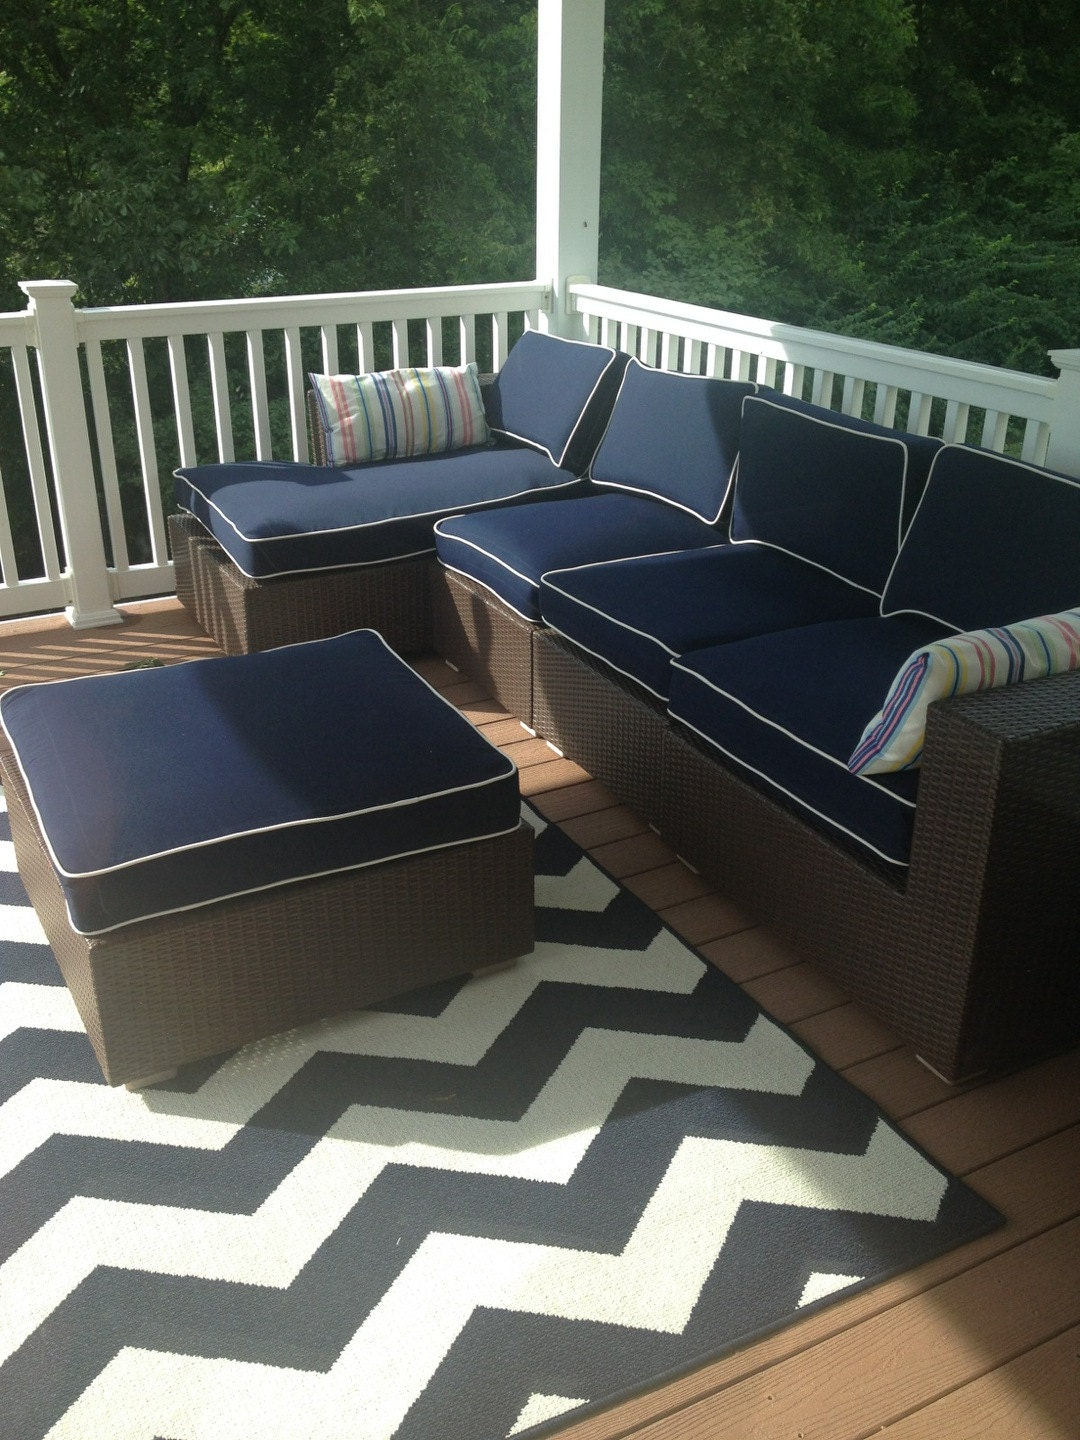 outdoor cushion covers chair pad outdoor seat cushions with etsy. Black Bedroom Furniture Sets. Home Design Ideas